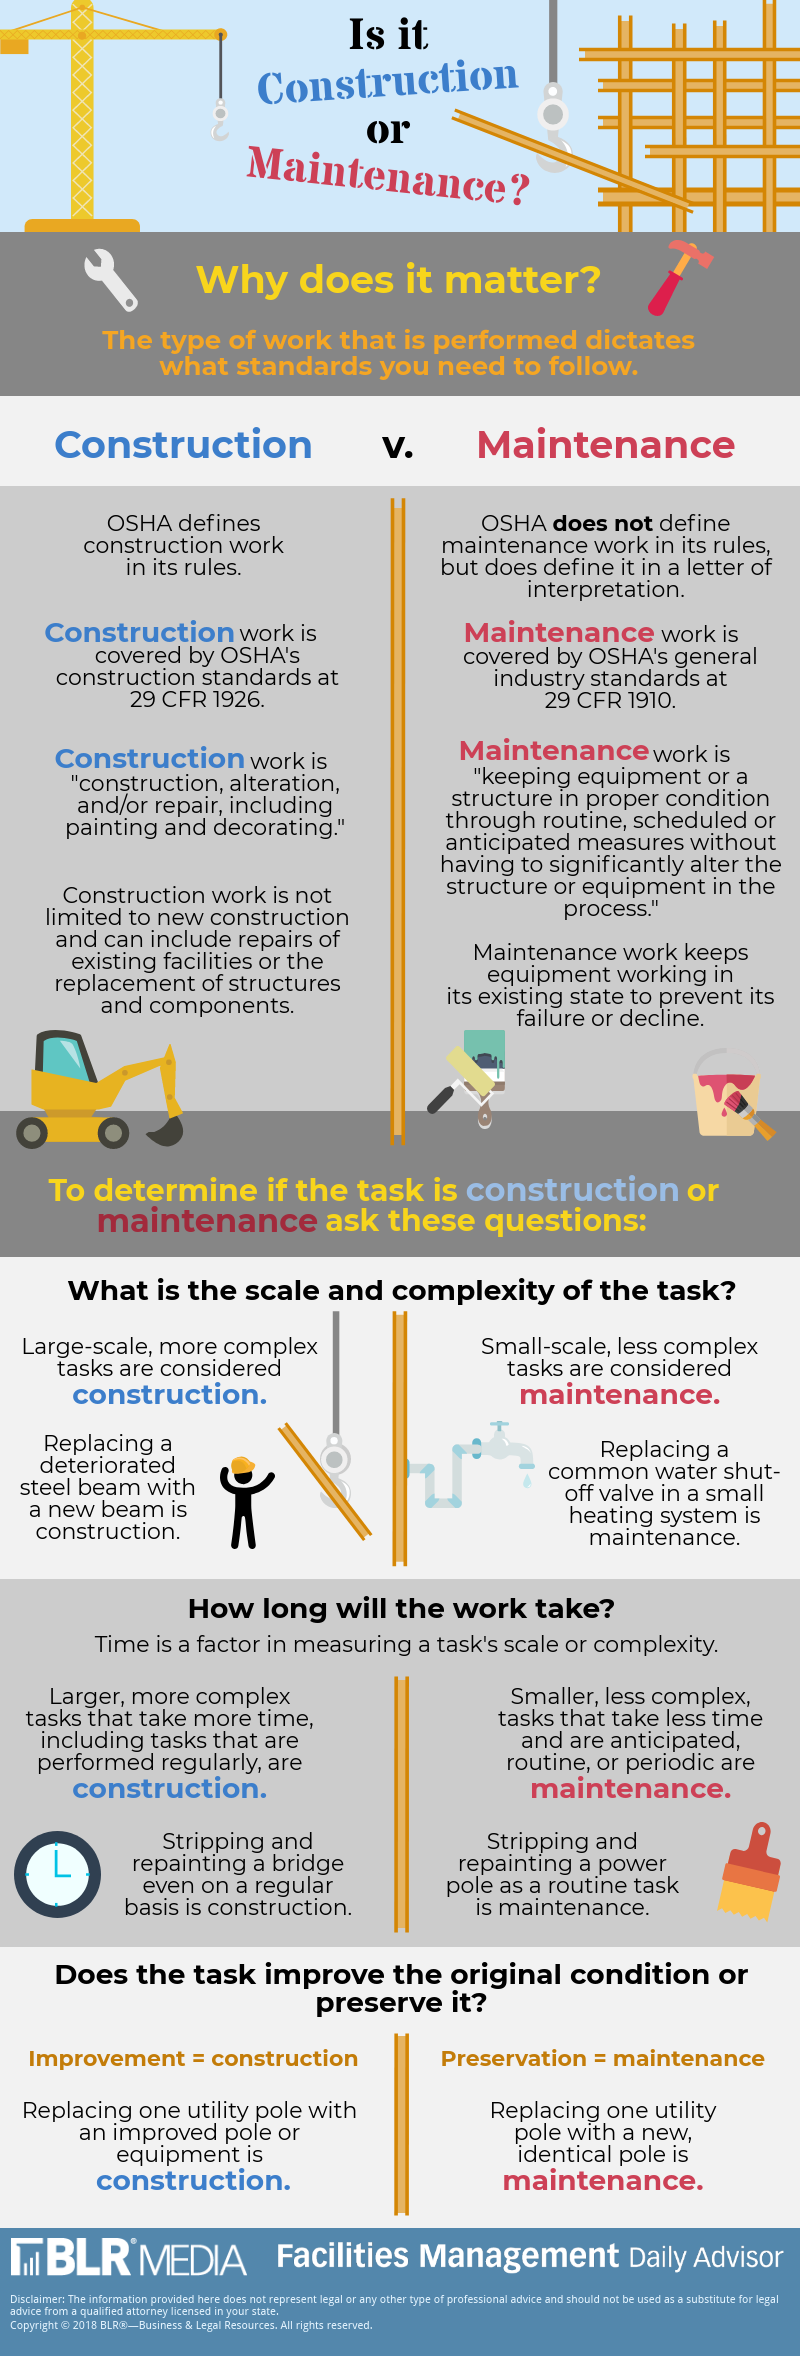 Construction vs Maintenace Infographic